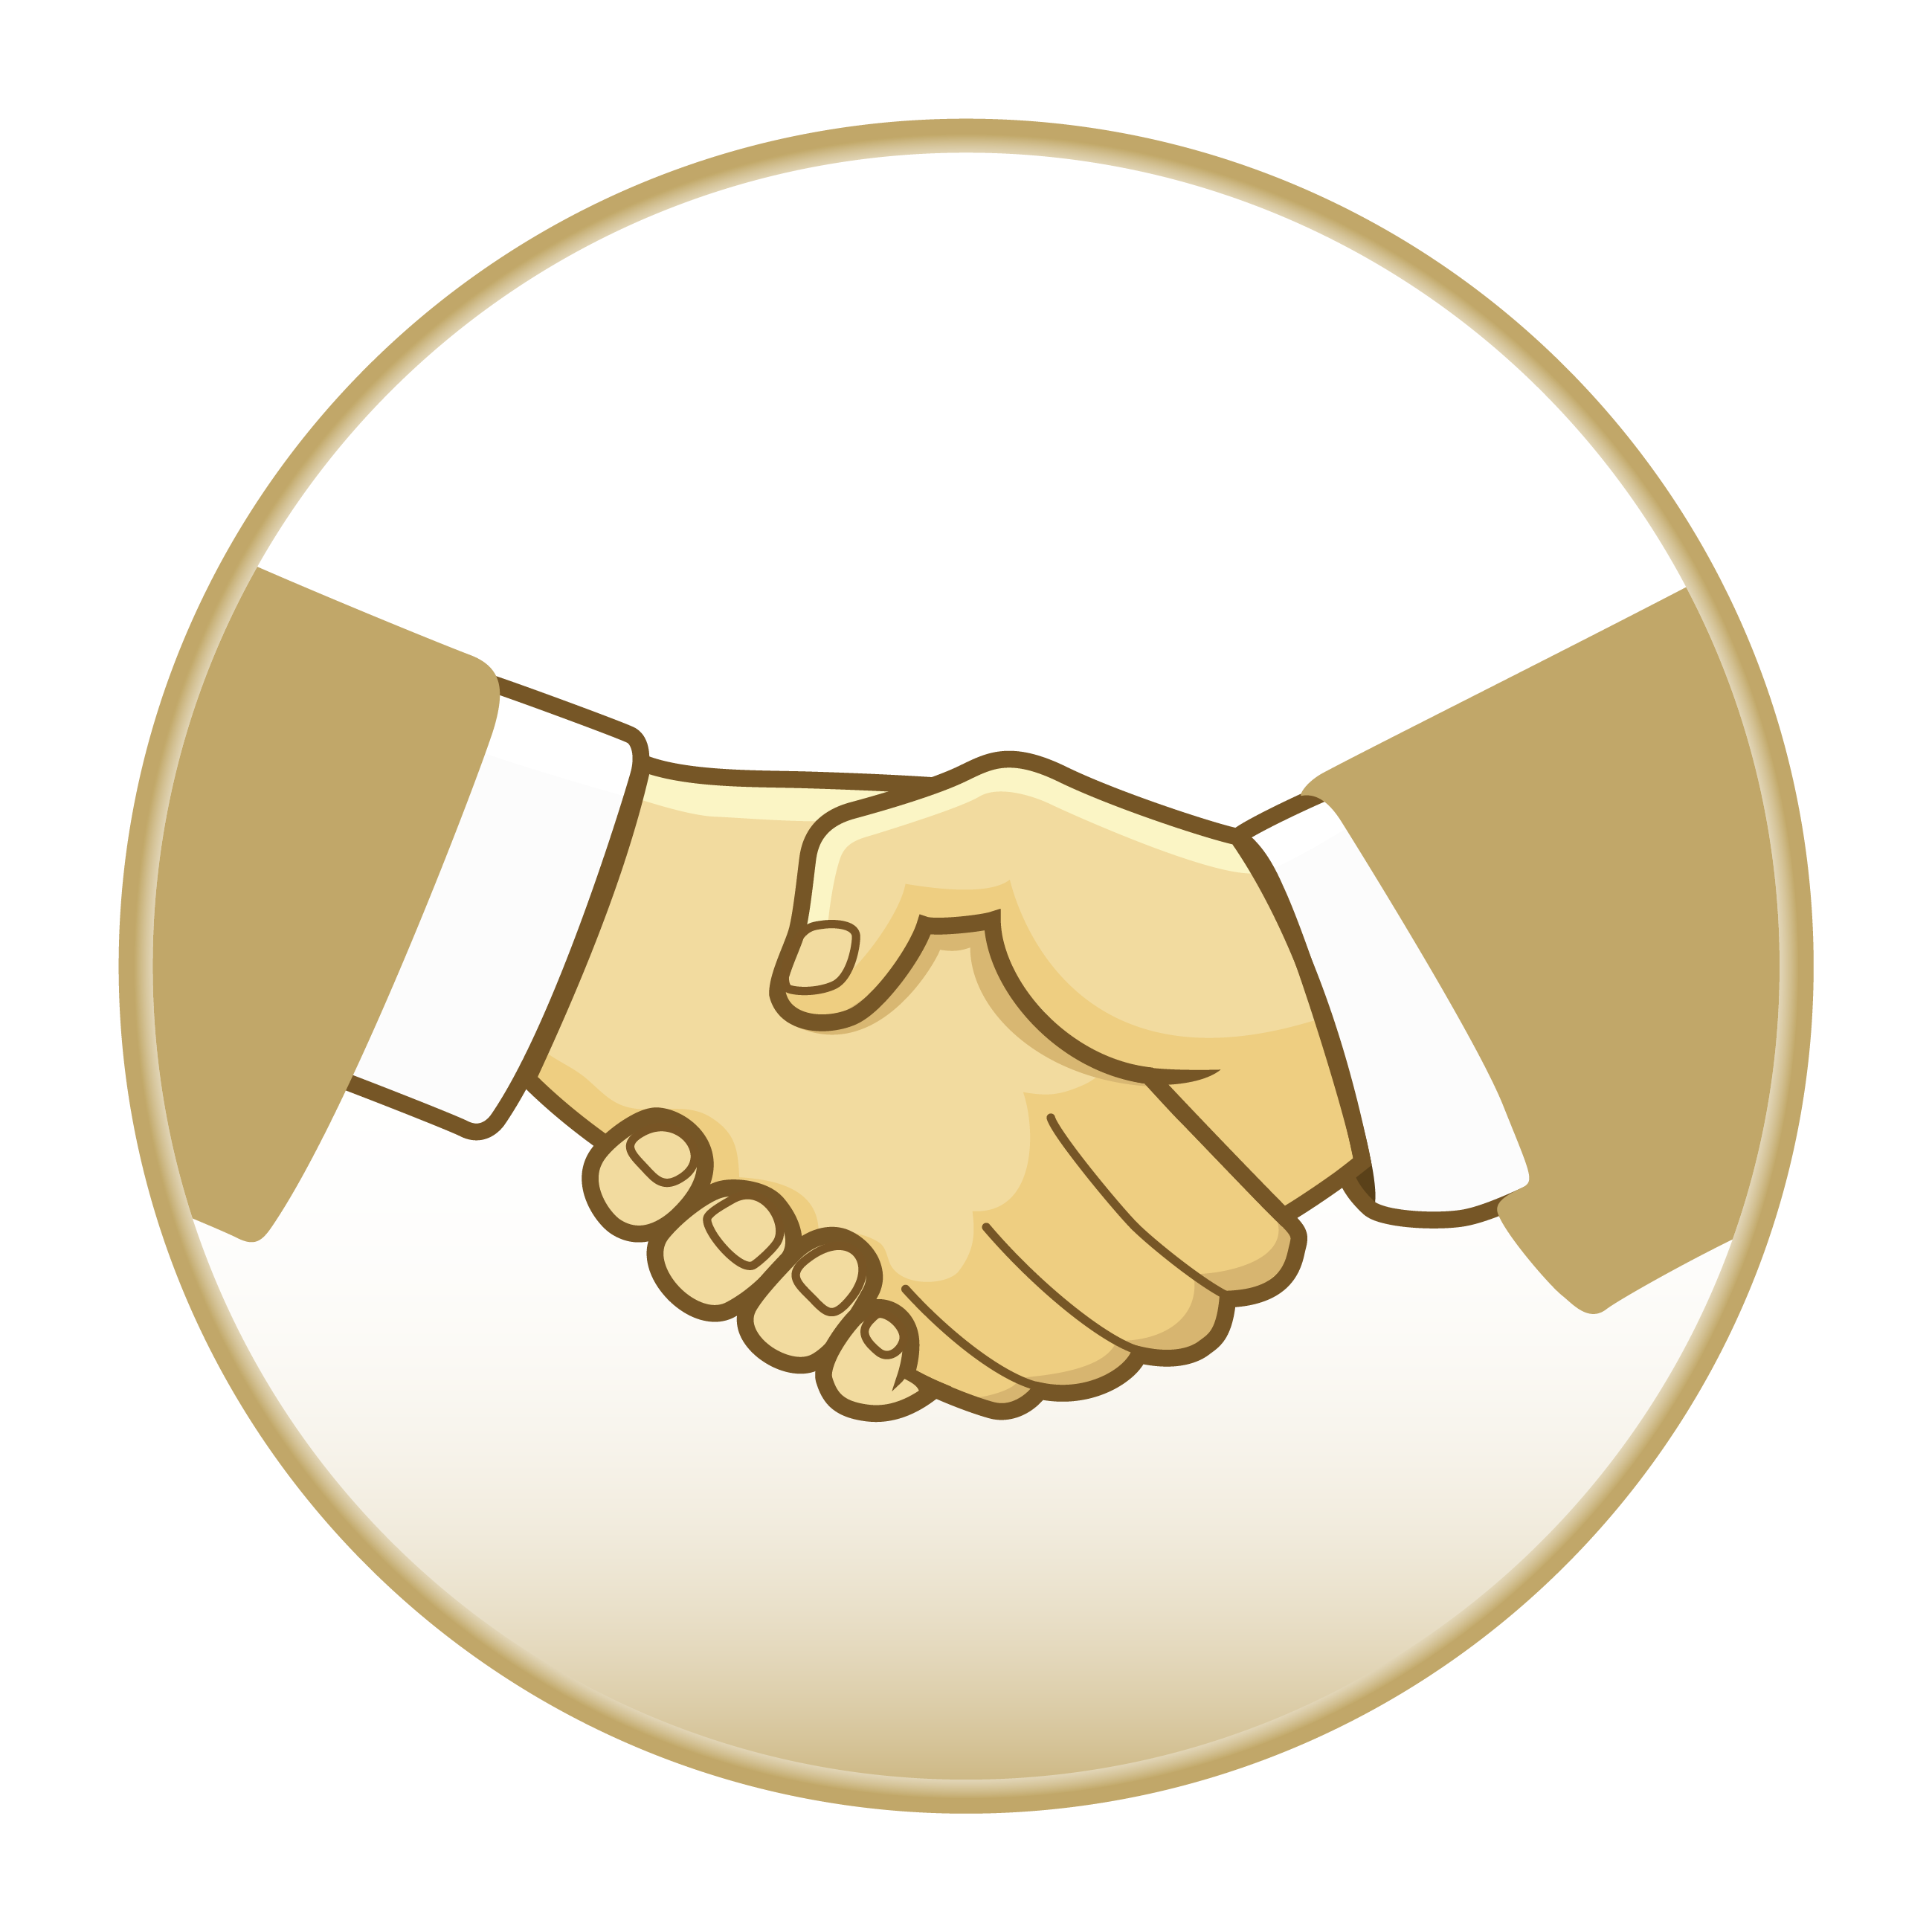 Handshake clipart joint venture. Our services the magdalena